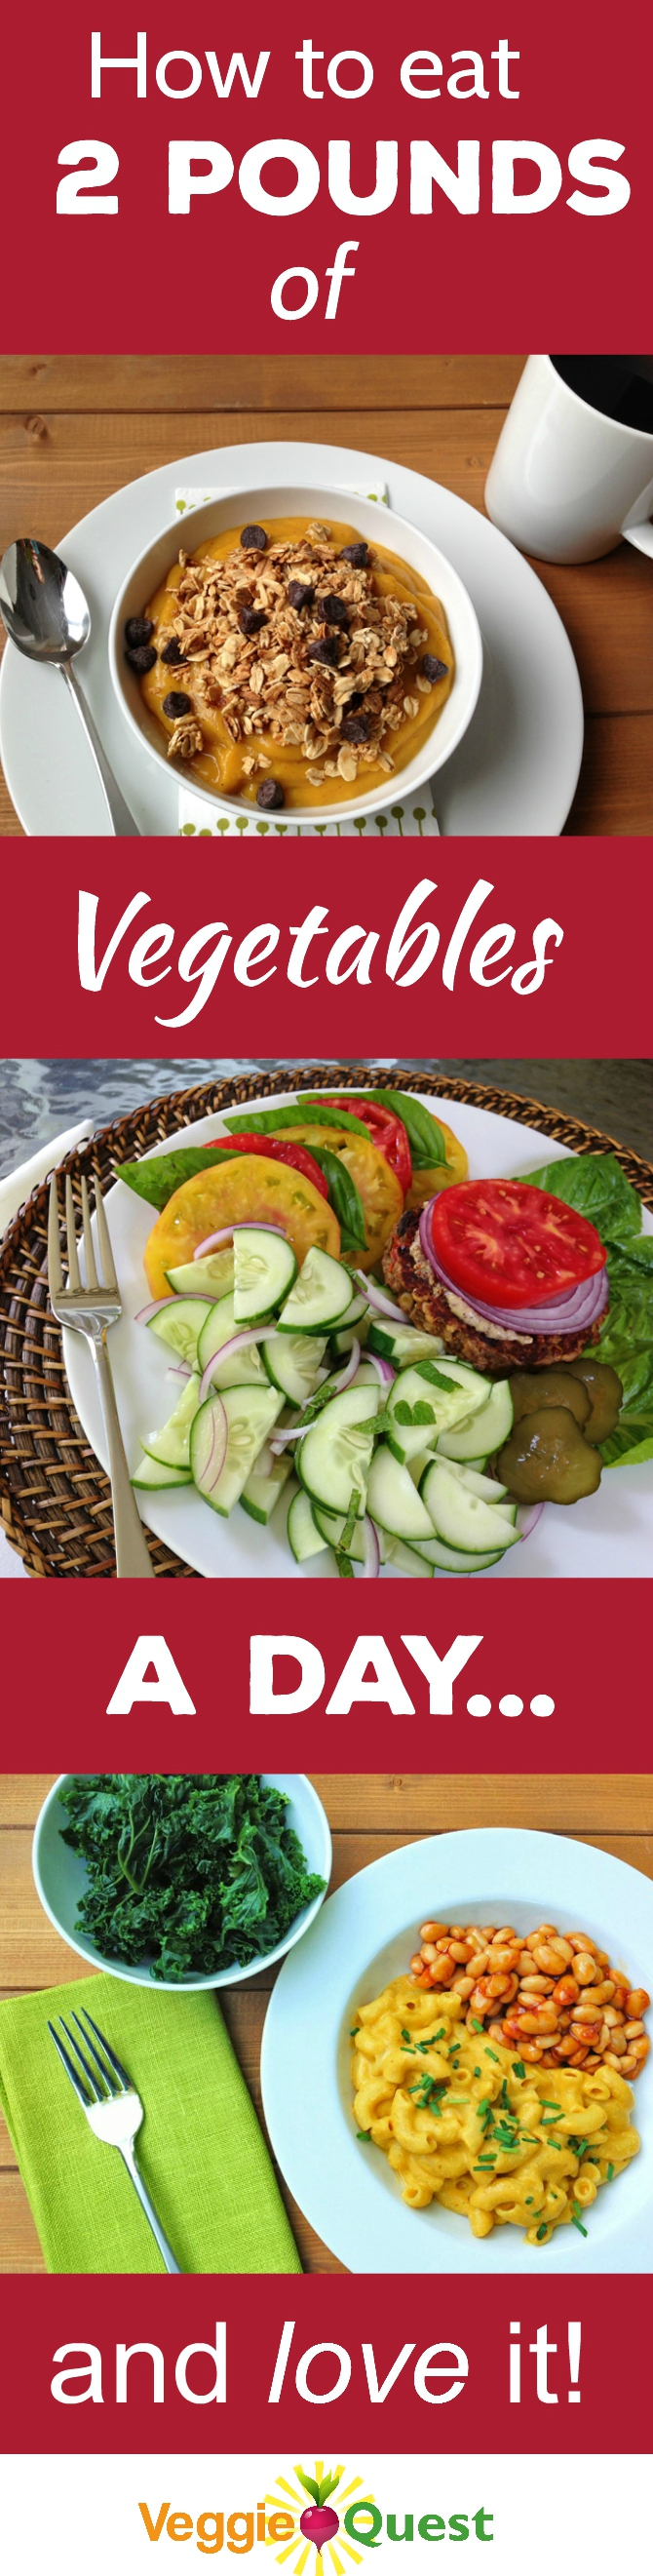 How to eat 2 pounds of vegetables a day - and love it! (Gluten free - plant-based)